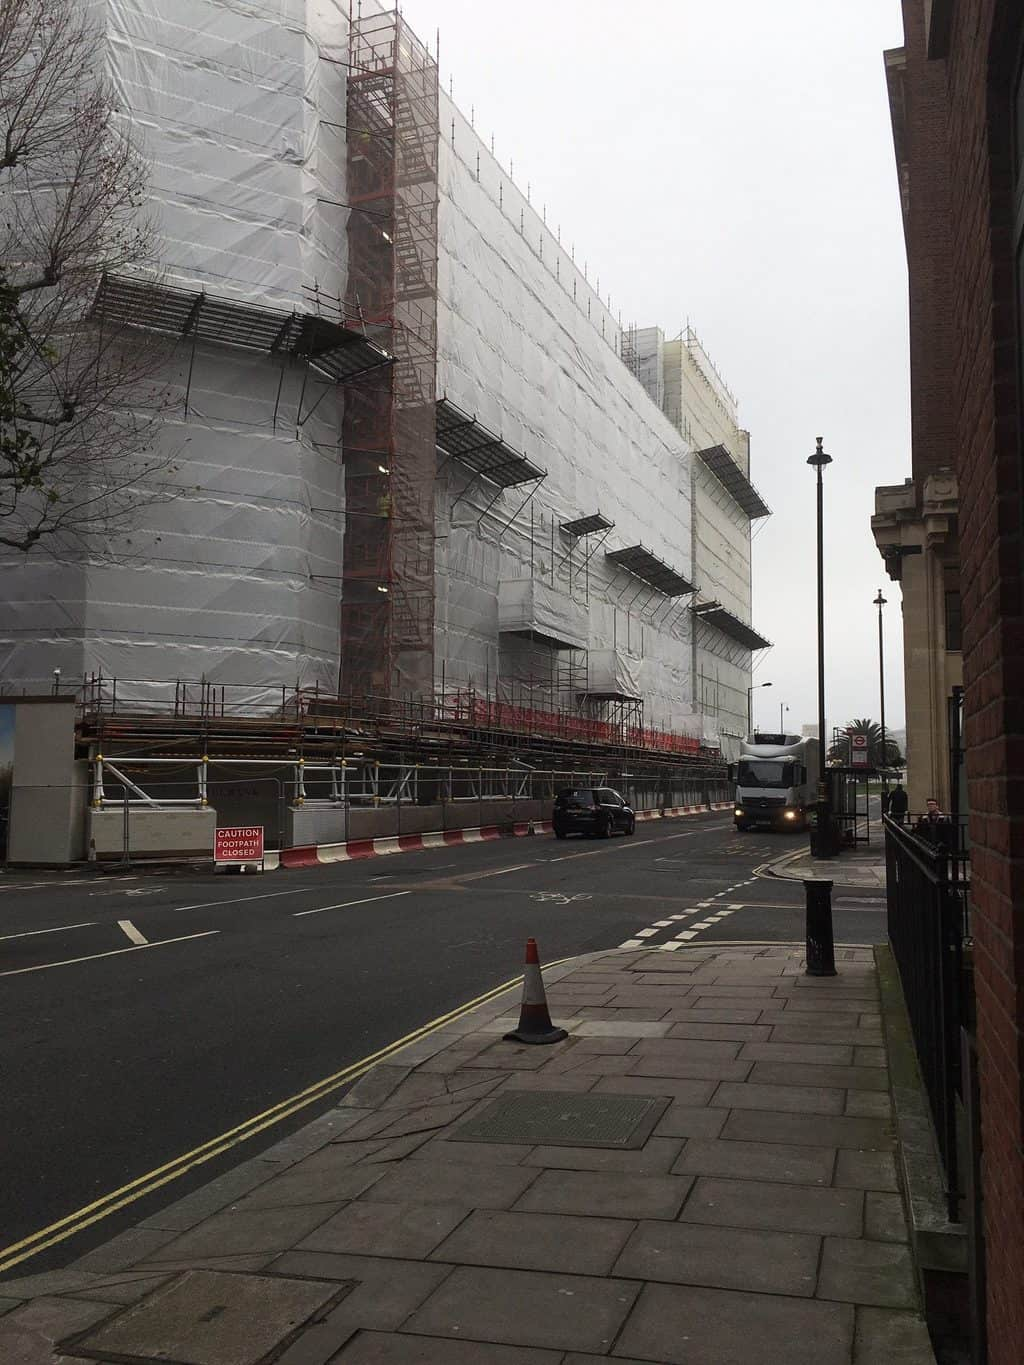 TRAD Scaffolding Contractors (TRAD) has completed the erection stage of work on 9 Millbank, a busy central London development managed by St Edwards Homes.